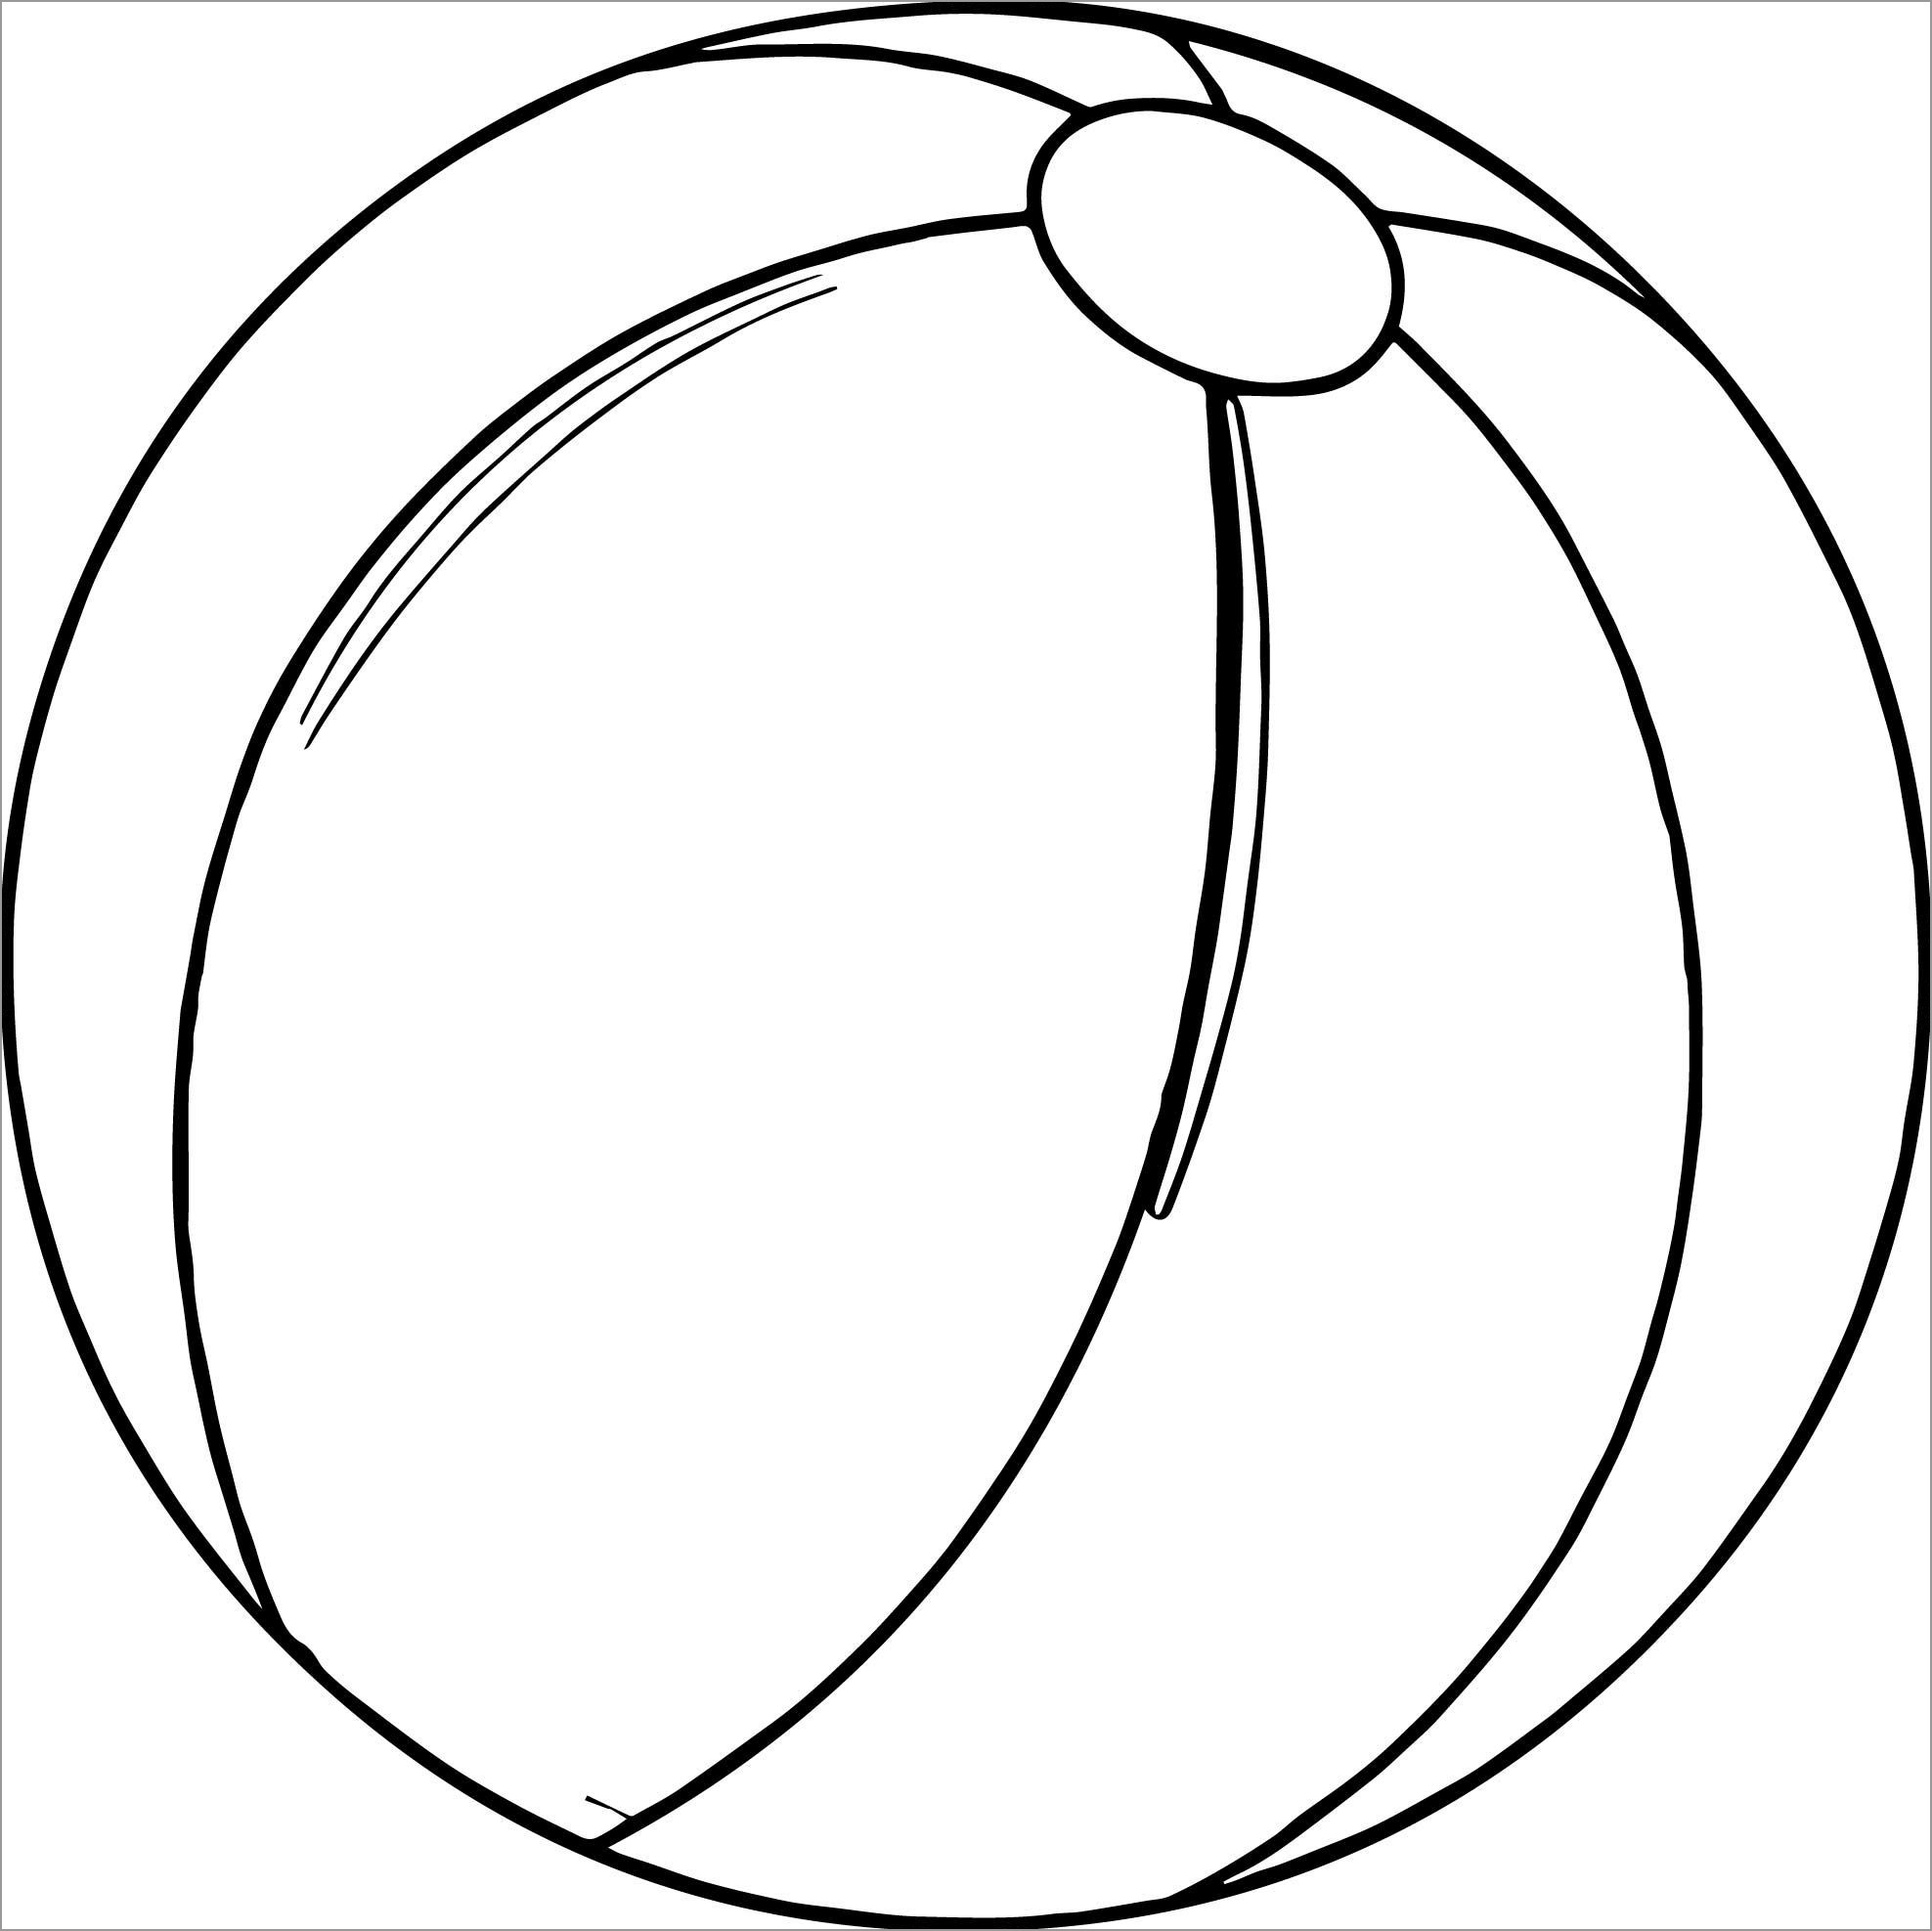 ball coloring pages ball sports coloring pages coloring book ball coloring pages